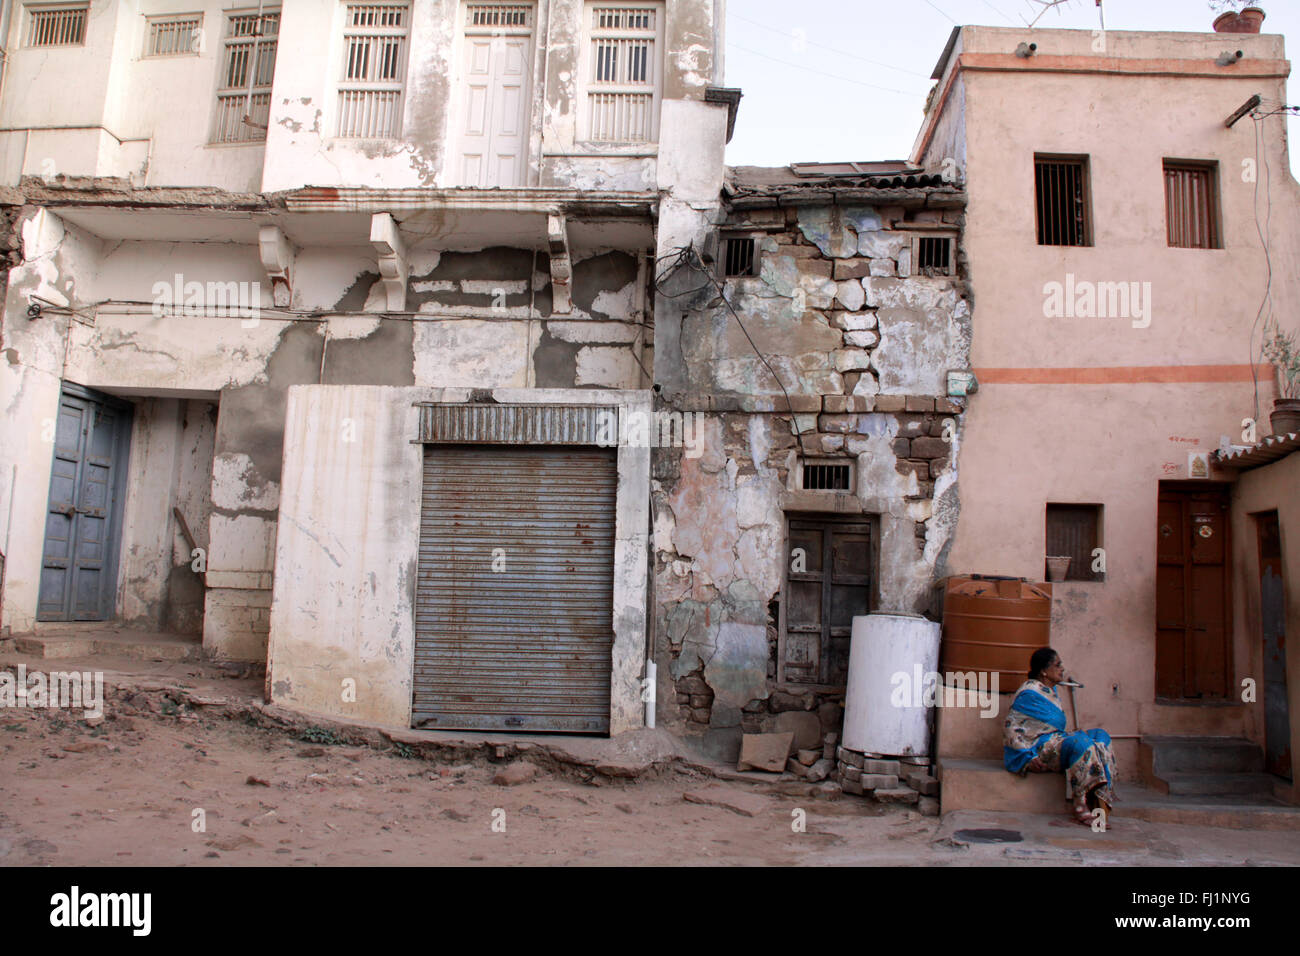 Old dilapidated abandoned houses in Bhuj, Gujarat - traces of earthquake - India - Stock Image